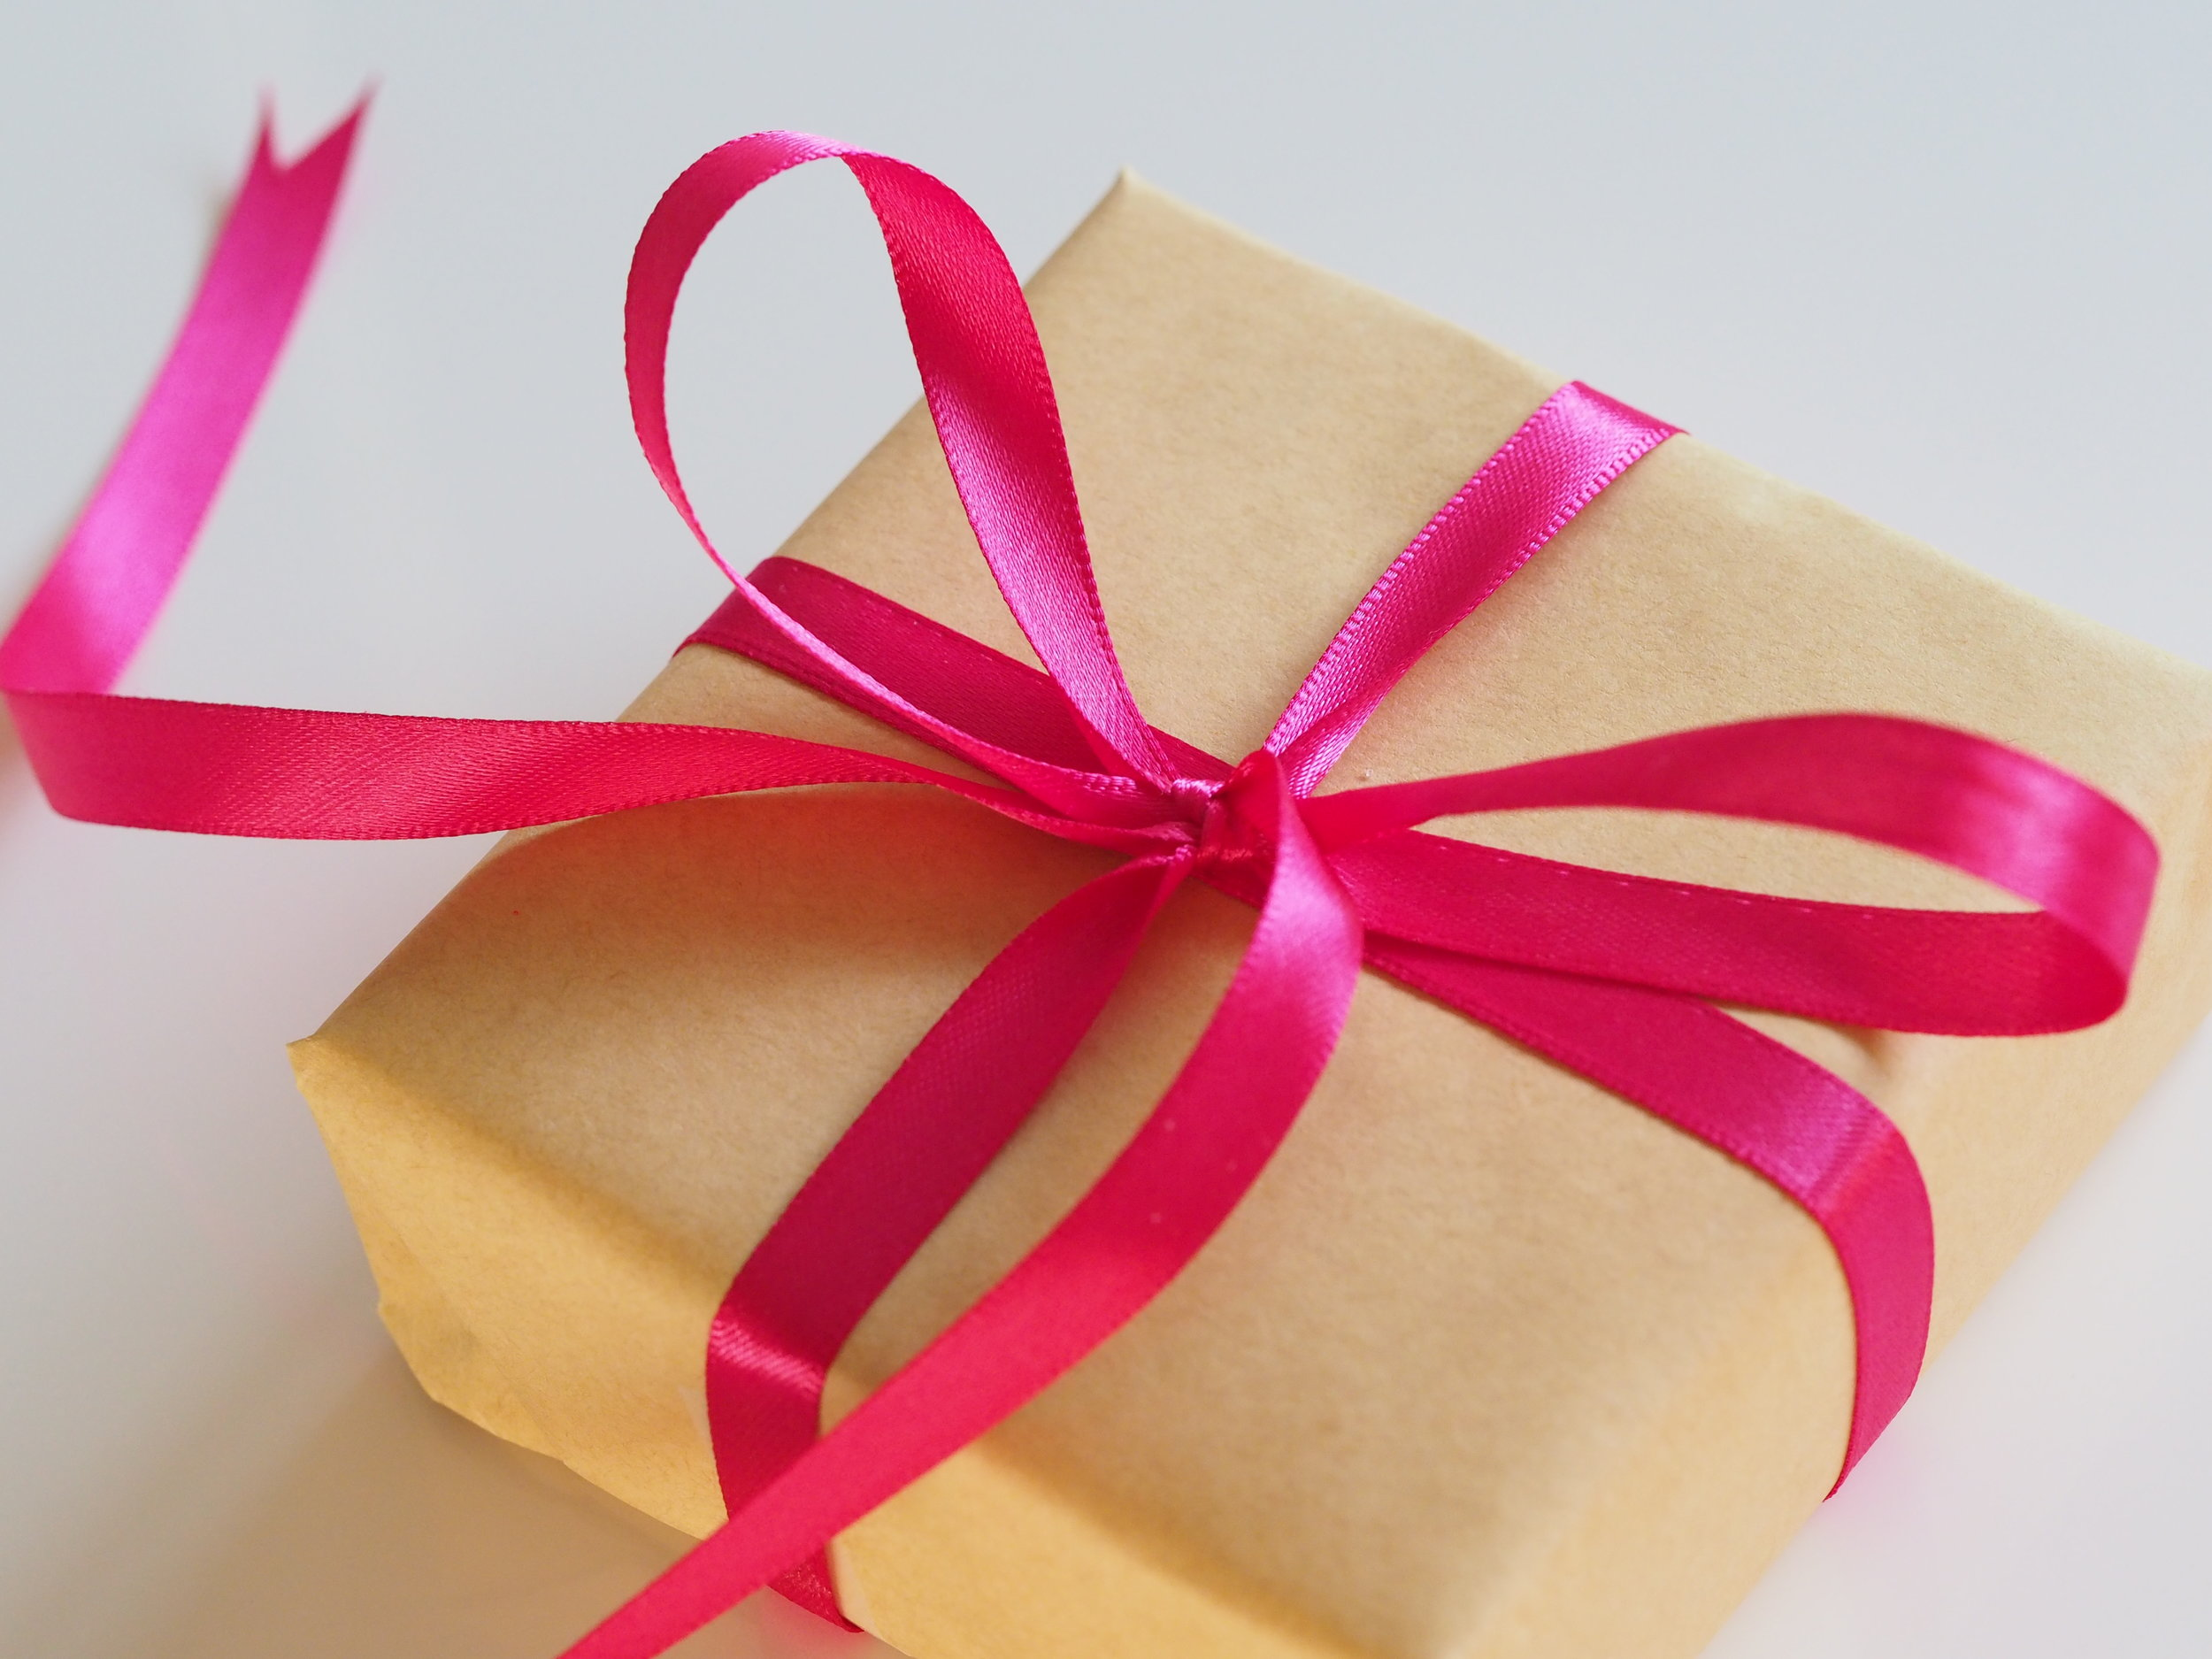 Purchase a gift of relaxation!